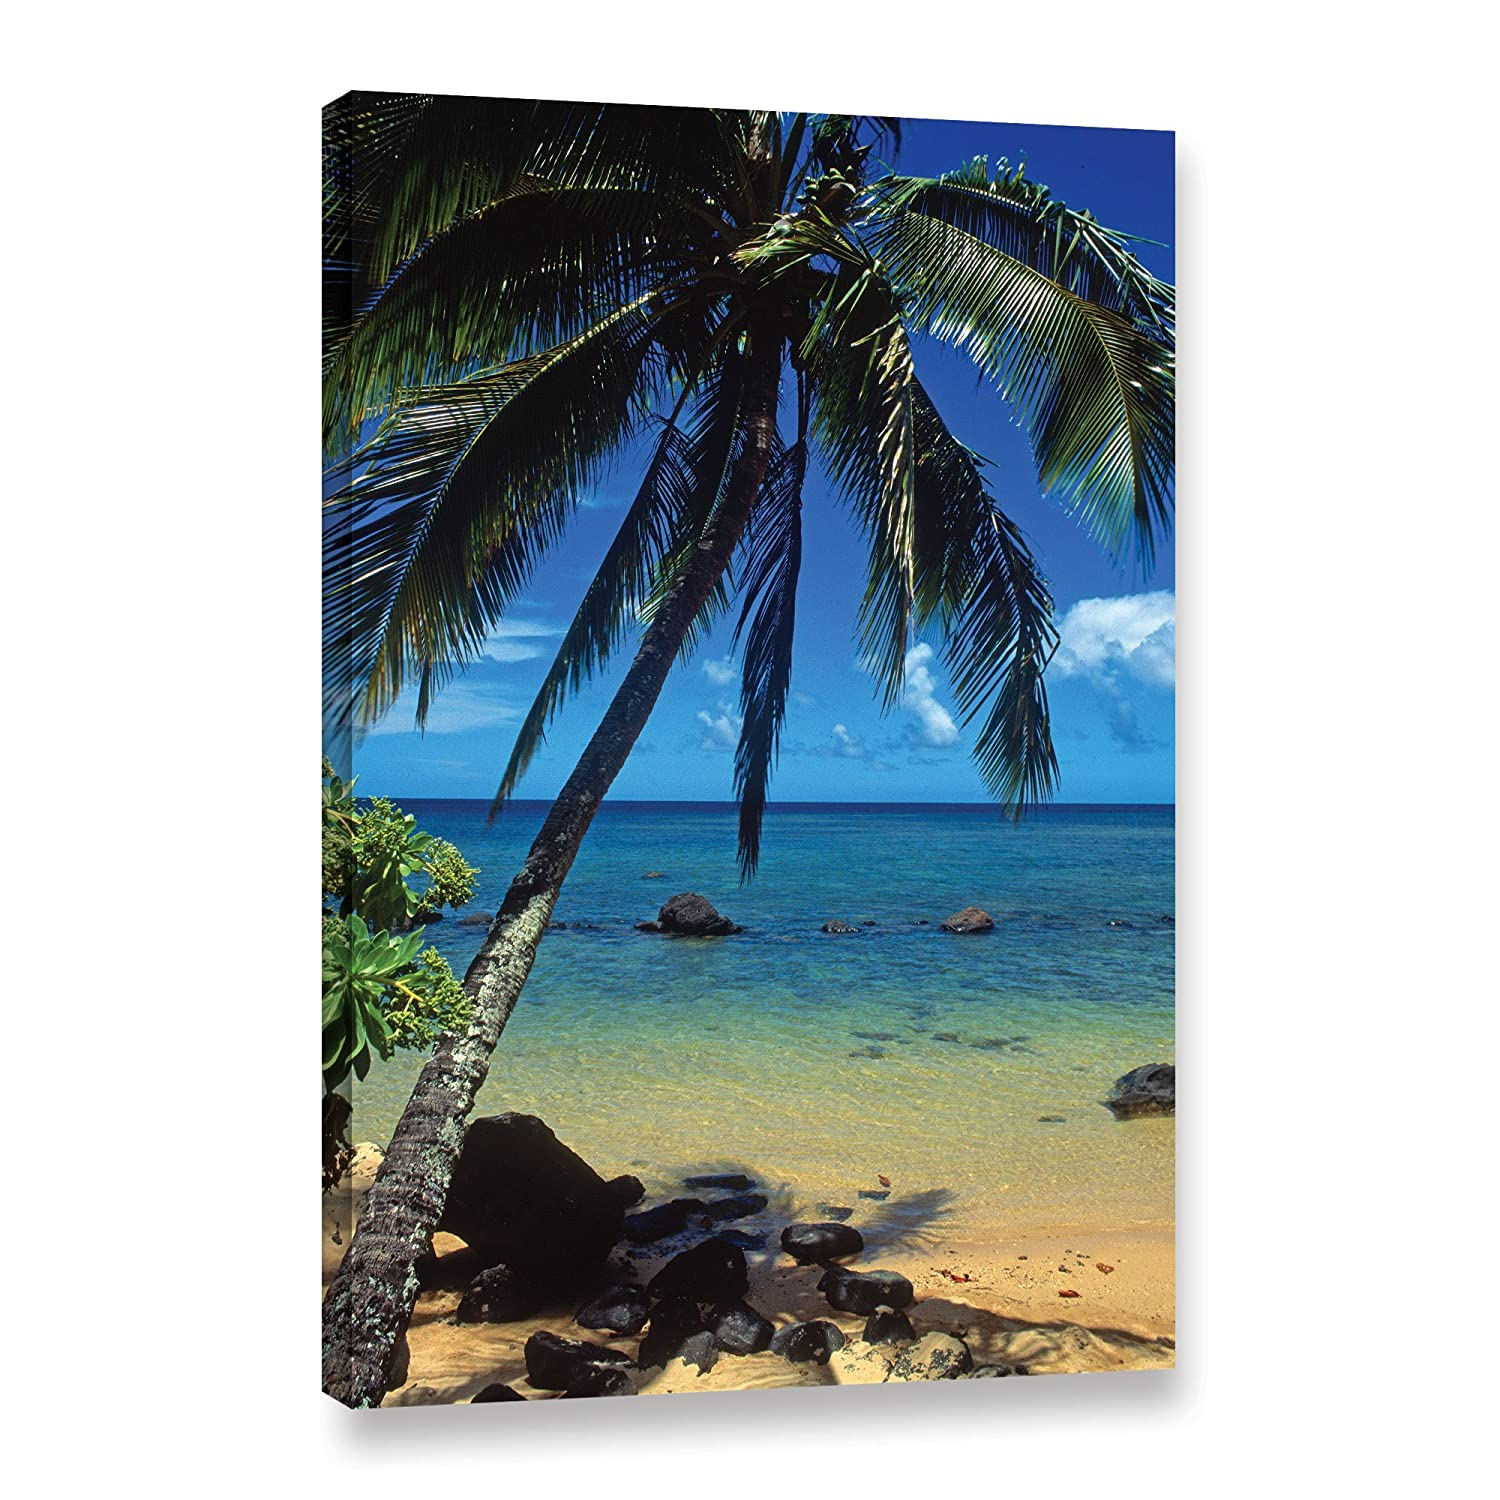 ArtWall Beautiful Animi Beach Gallery Wrapped Canvas by Kathy Yates, 32 by 48-Inch